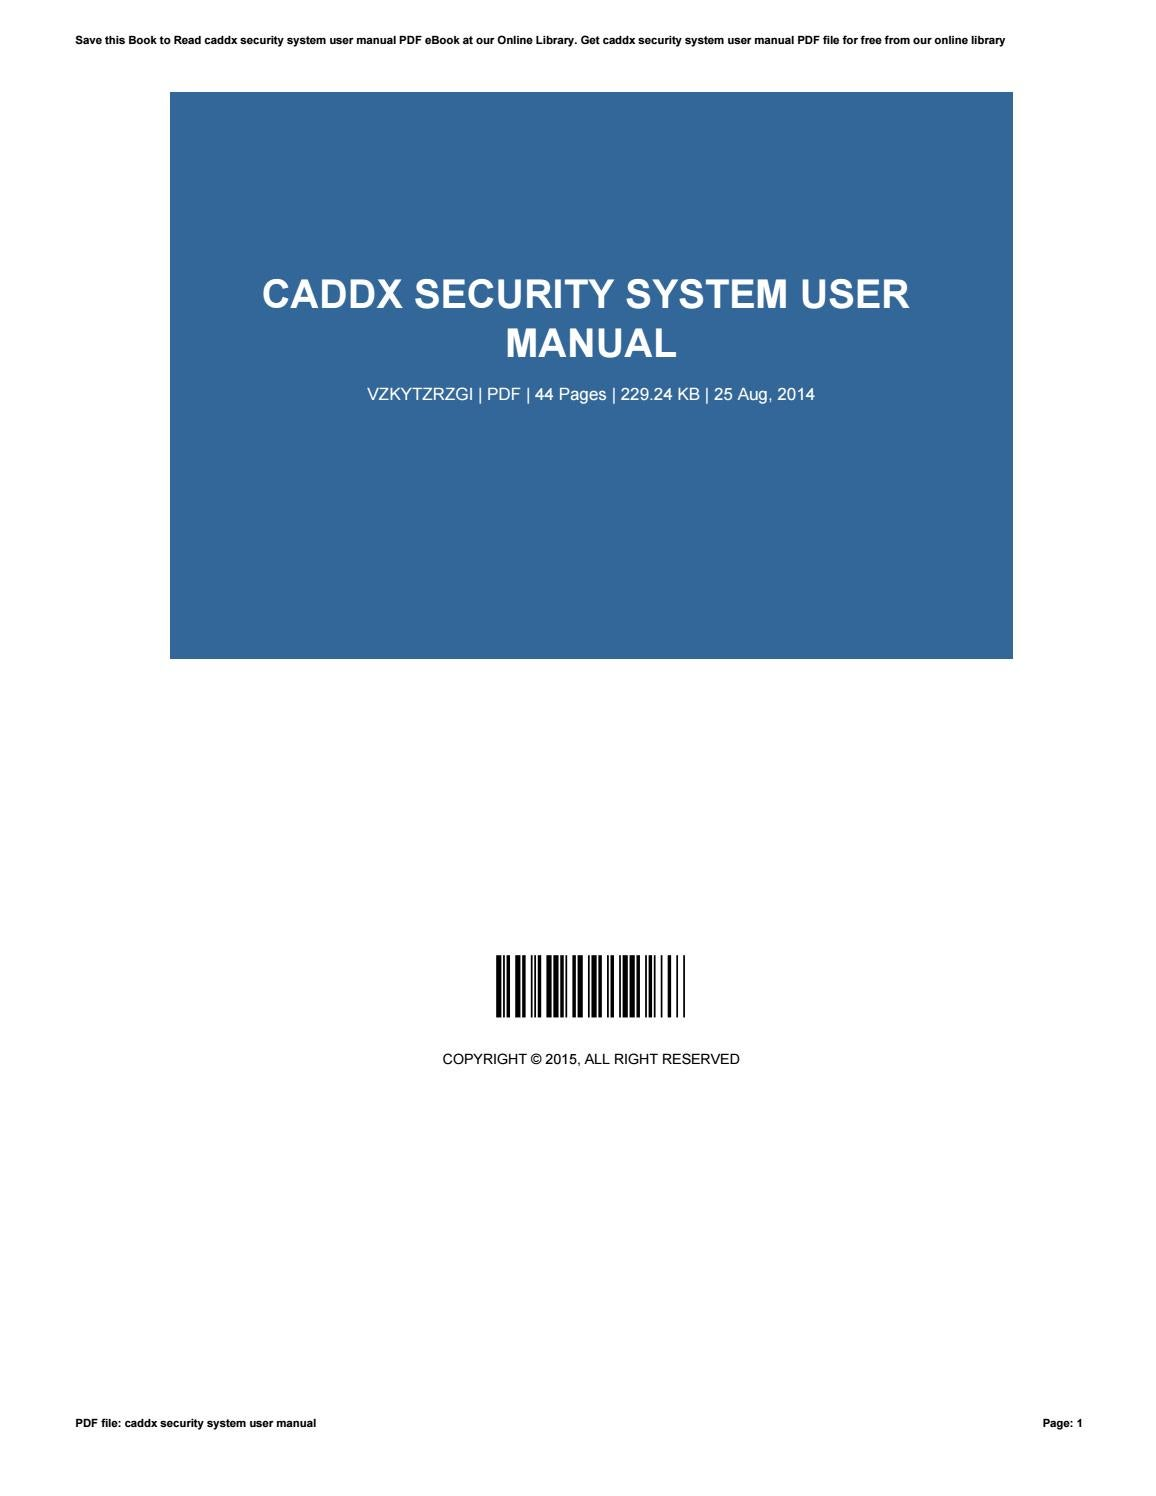 Caddx security system user manual by kathleencooley4368 issuu fandeluxe Gallery